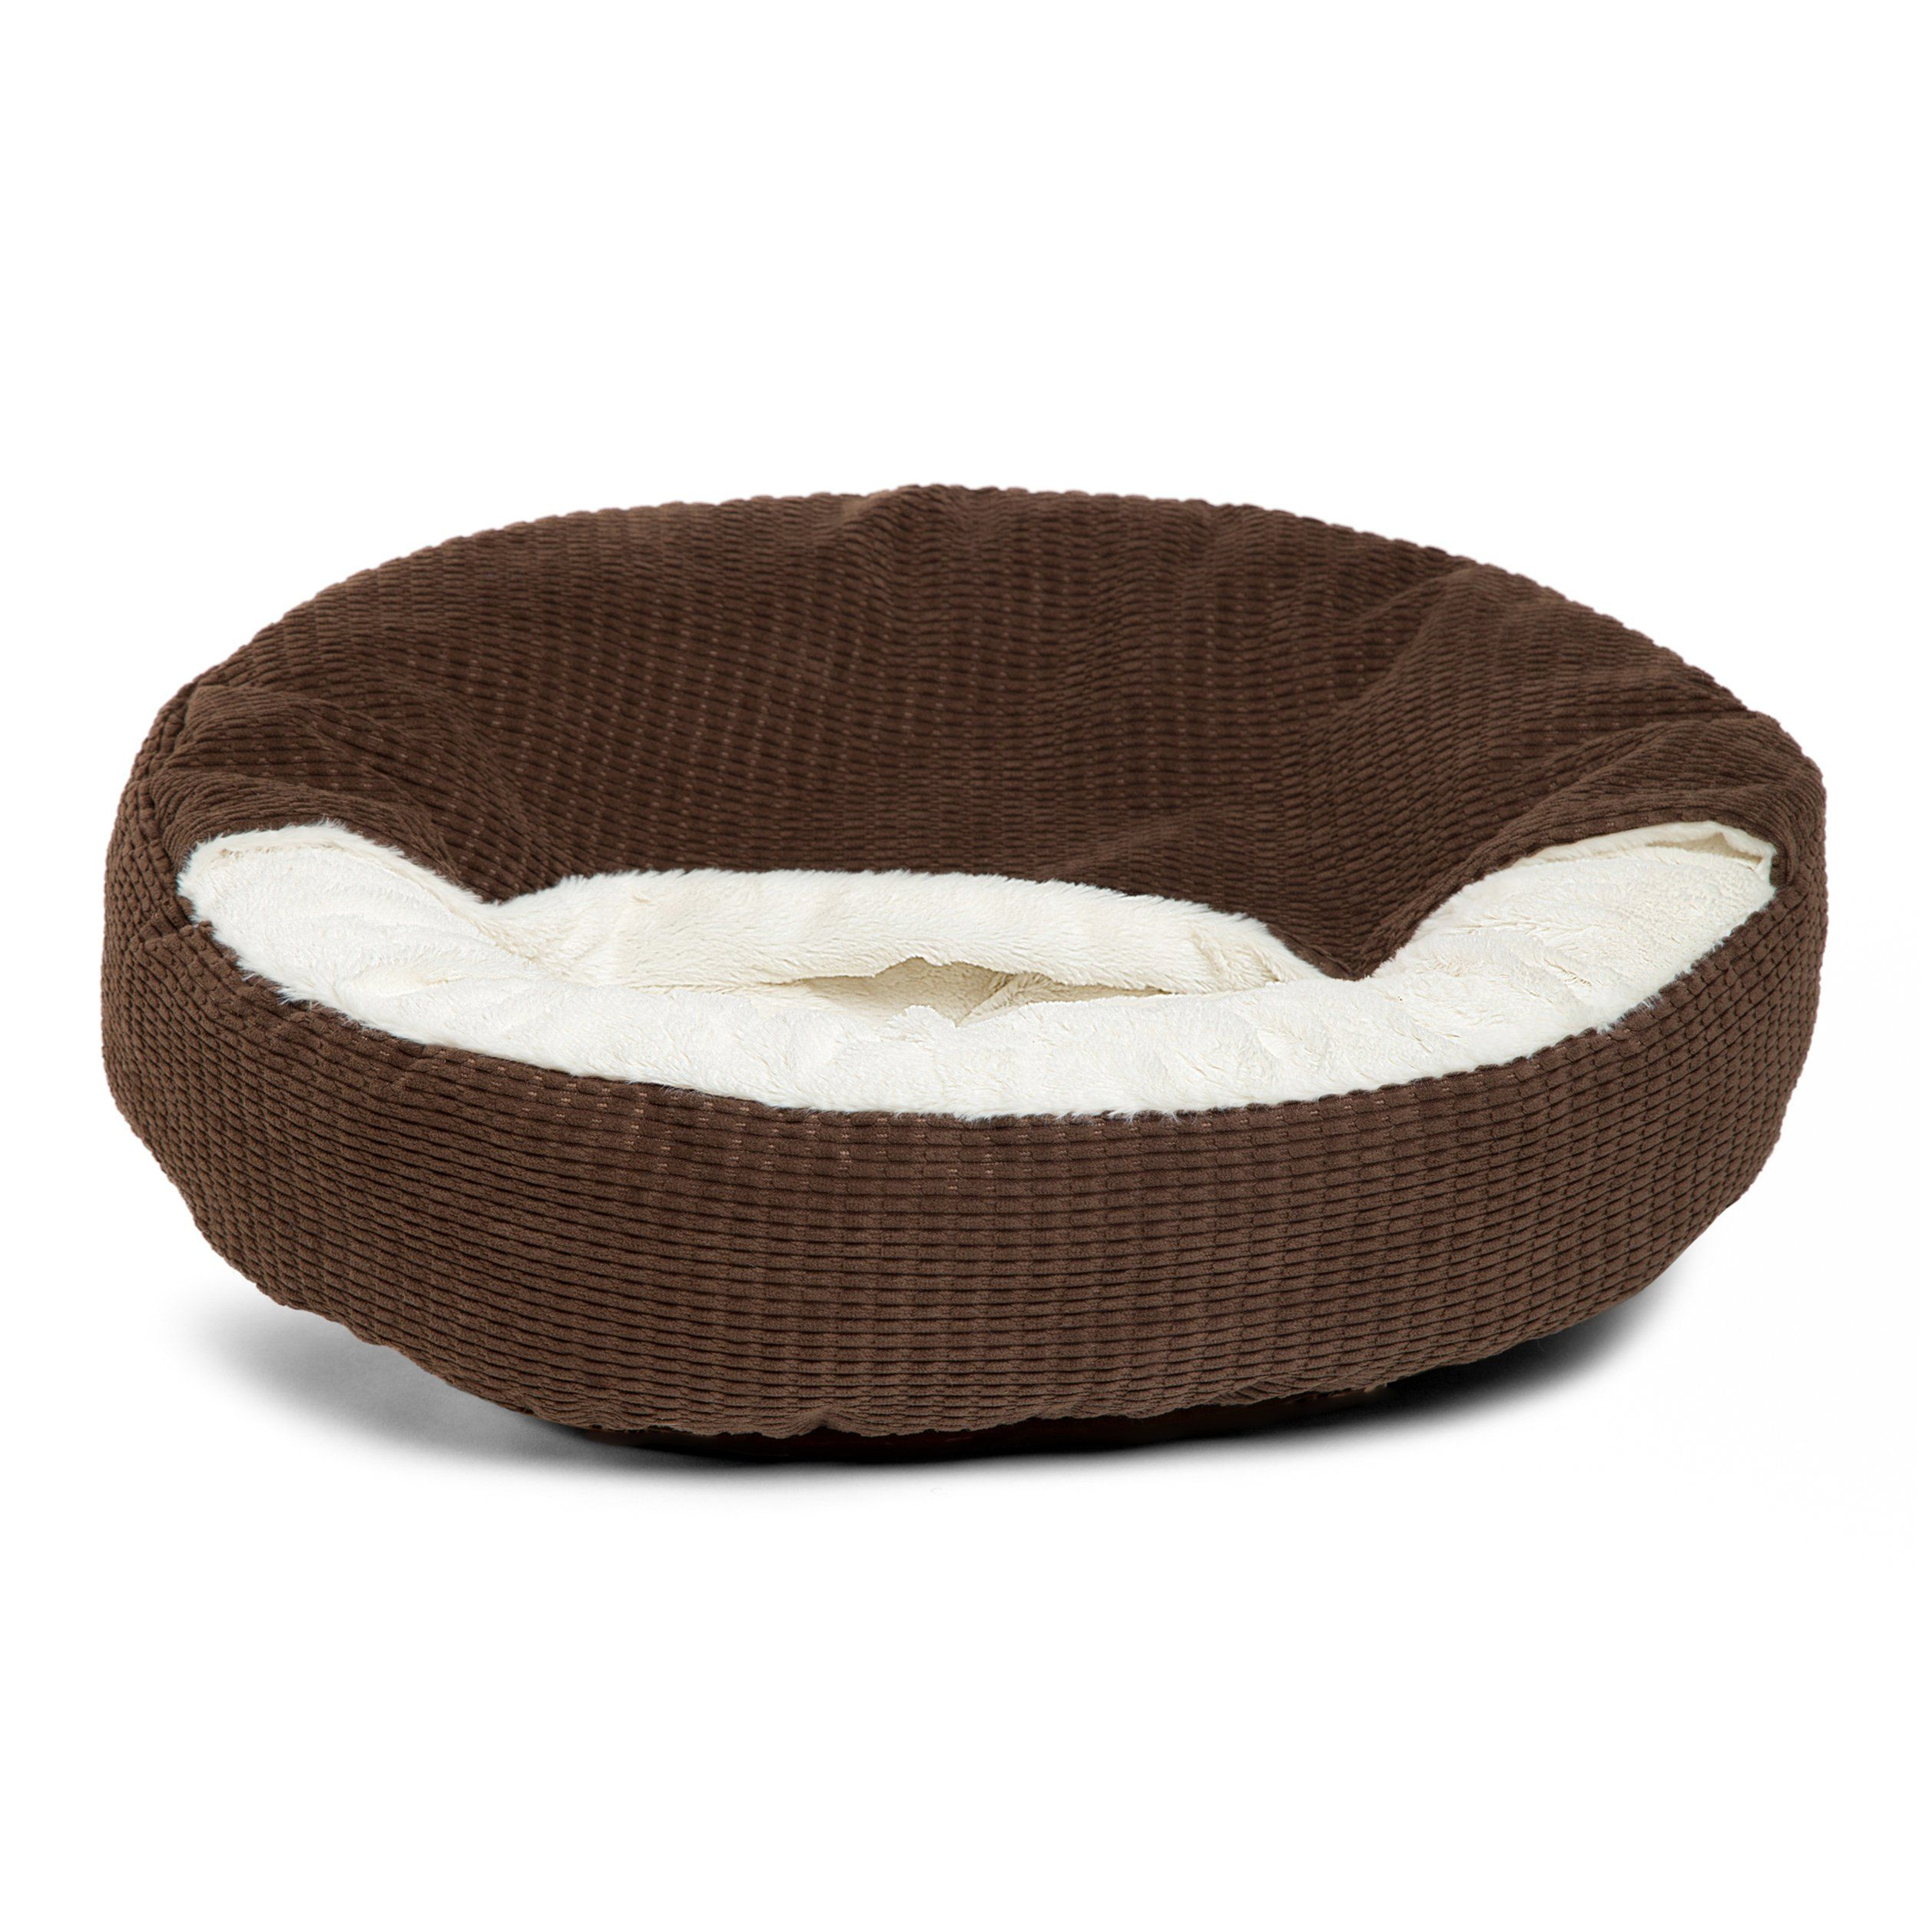 Best Friends By Sheri Cozy Cuddler In Mason Dog Cat Bed 26 X 26 Dark Chocolate Click Image For More Details This Is An Affiliate Link Dogbedfurni Cat Bed